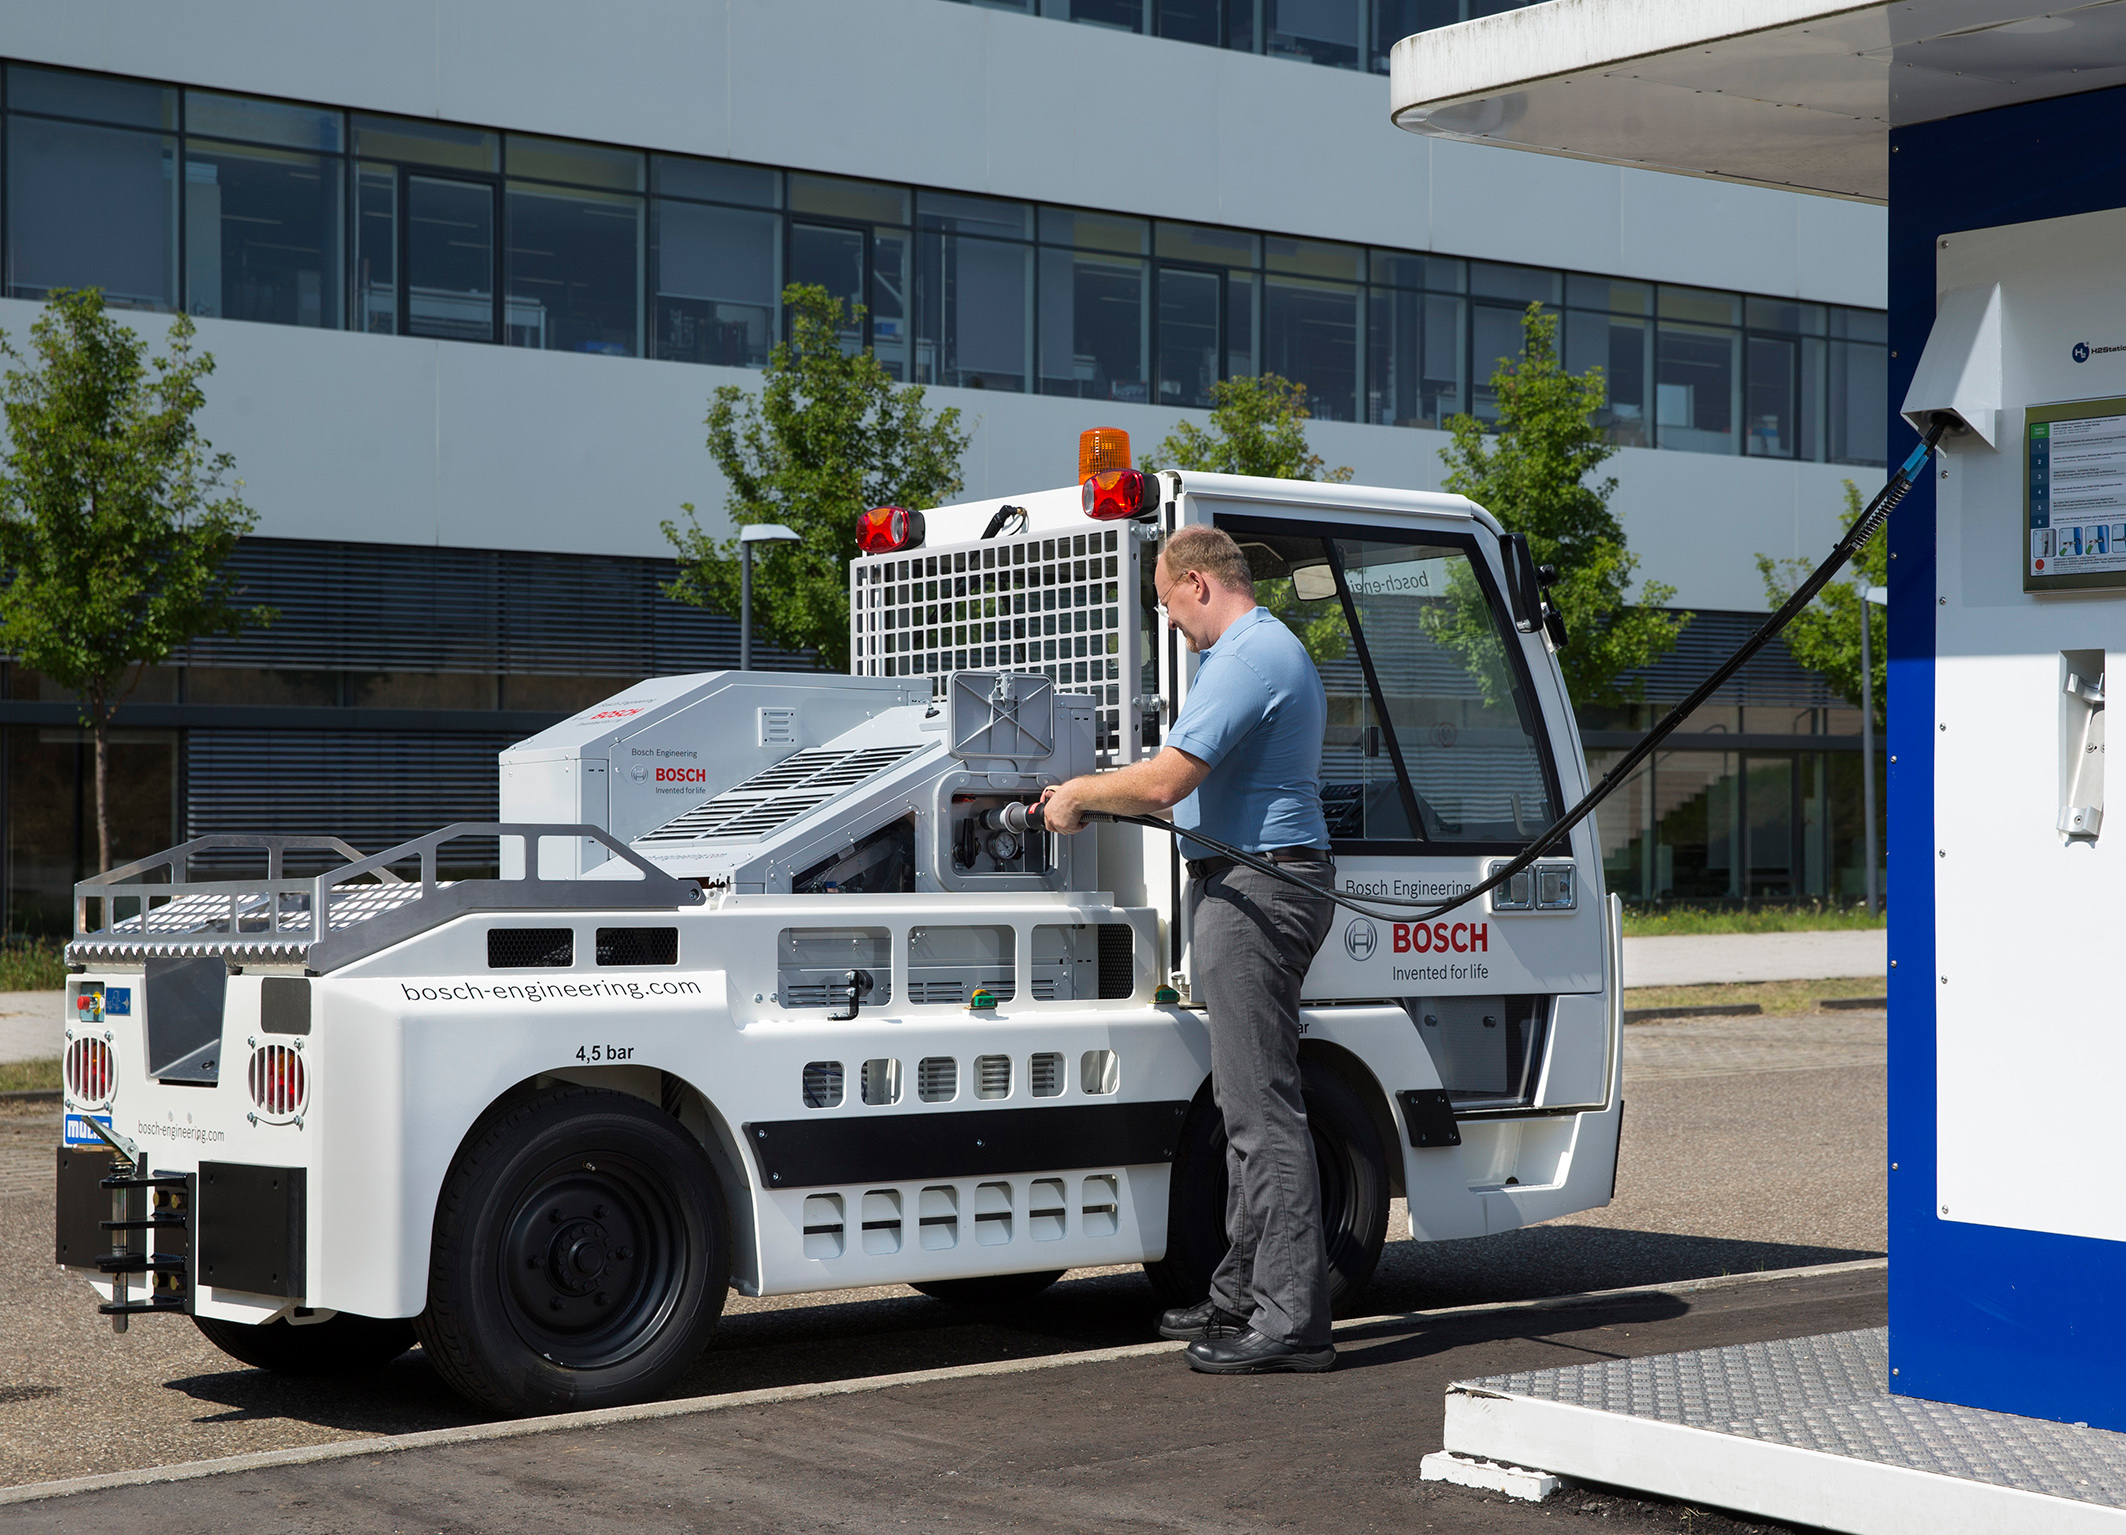 Airport baggage towing vehicle with fuel cell power train